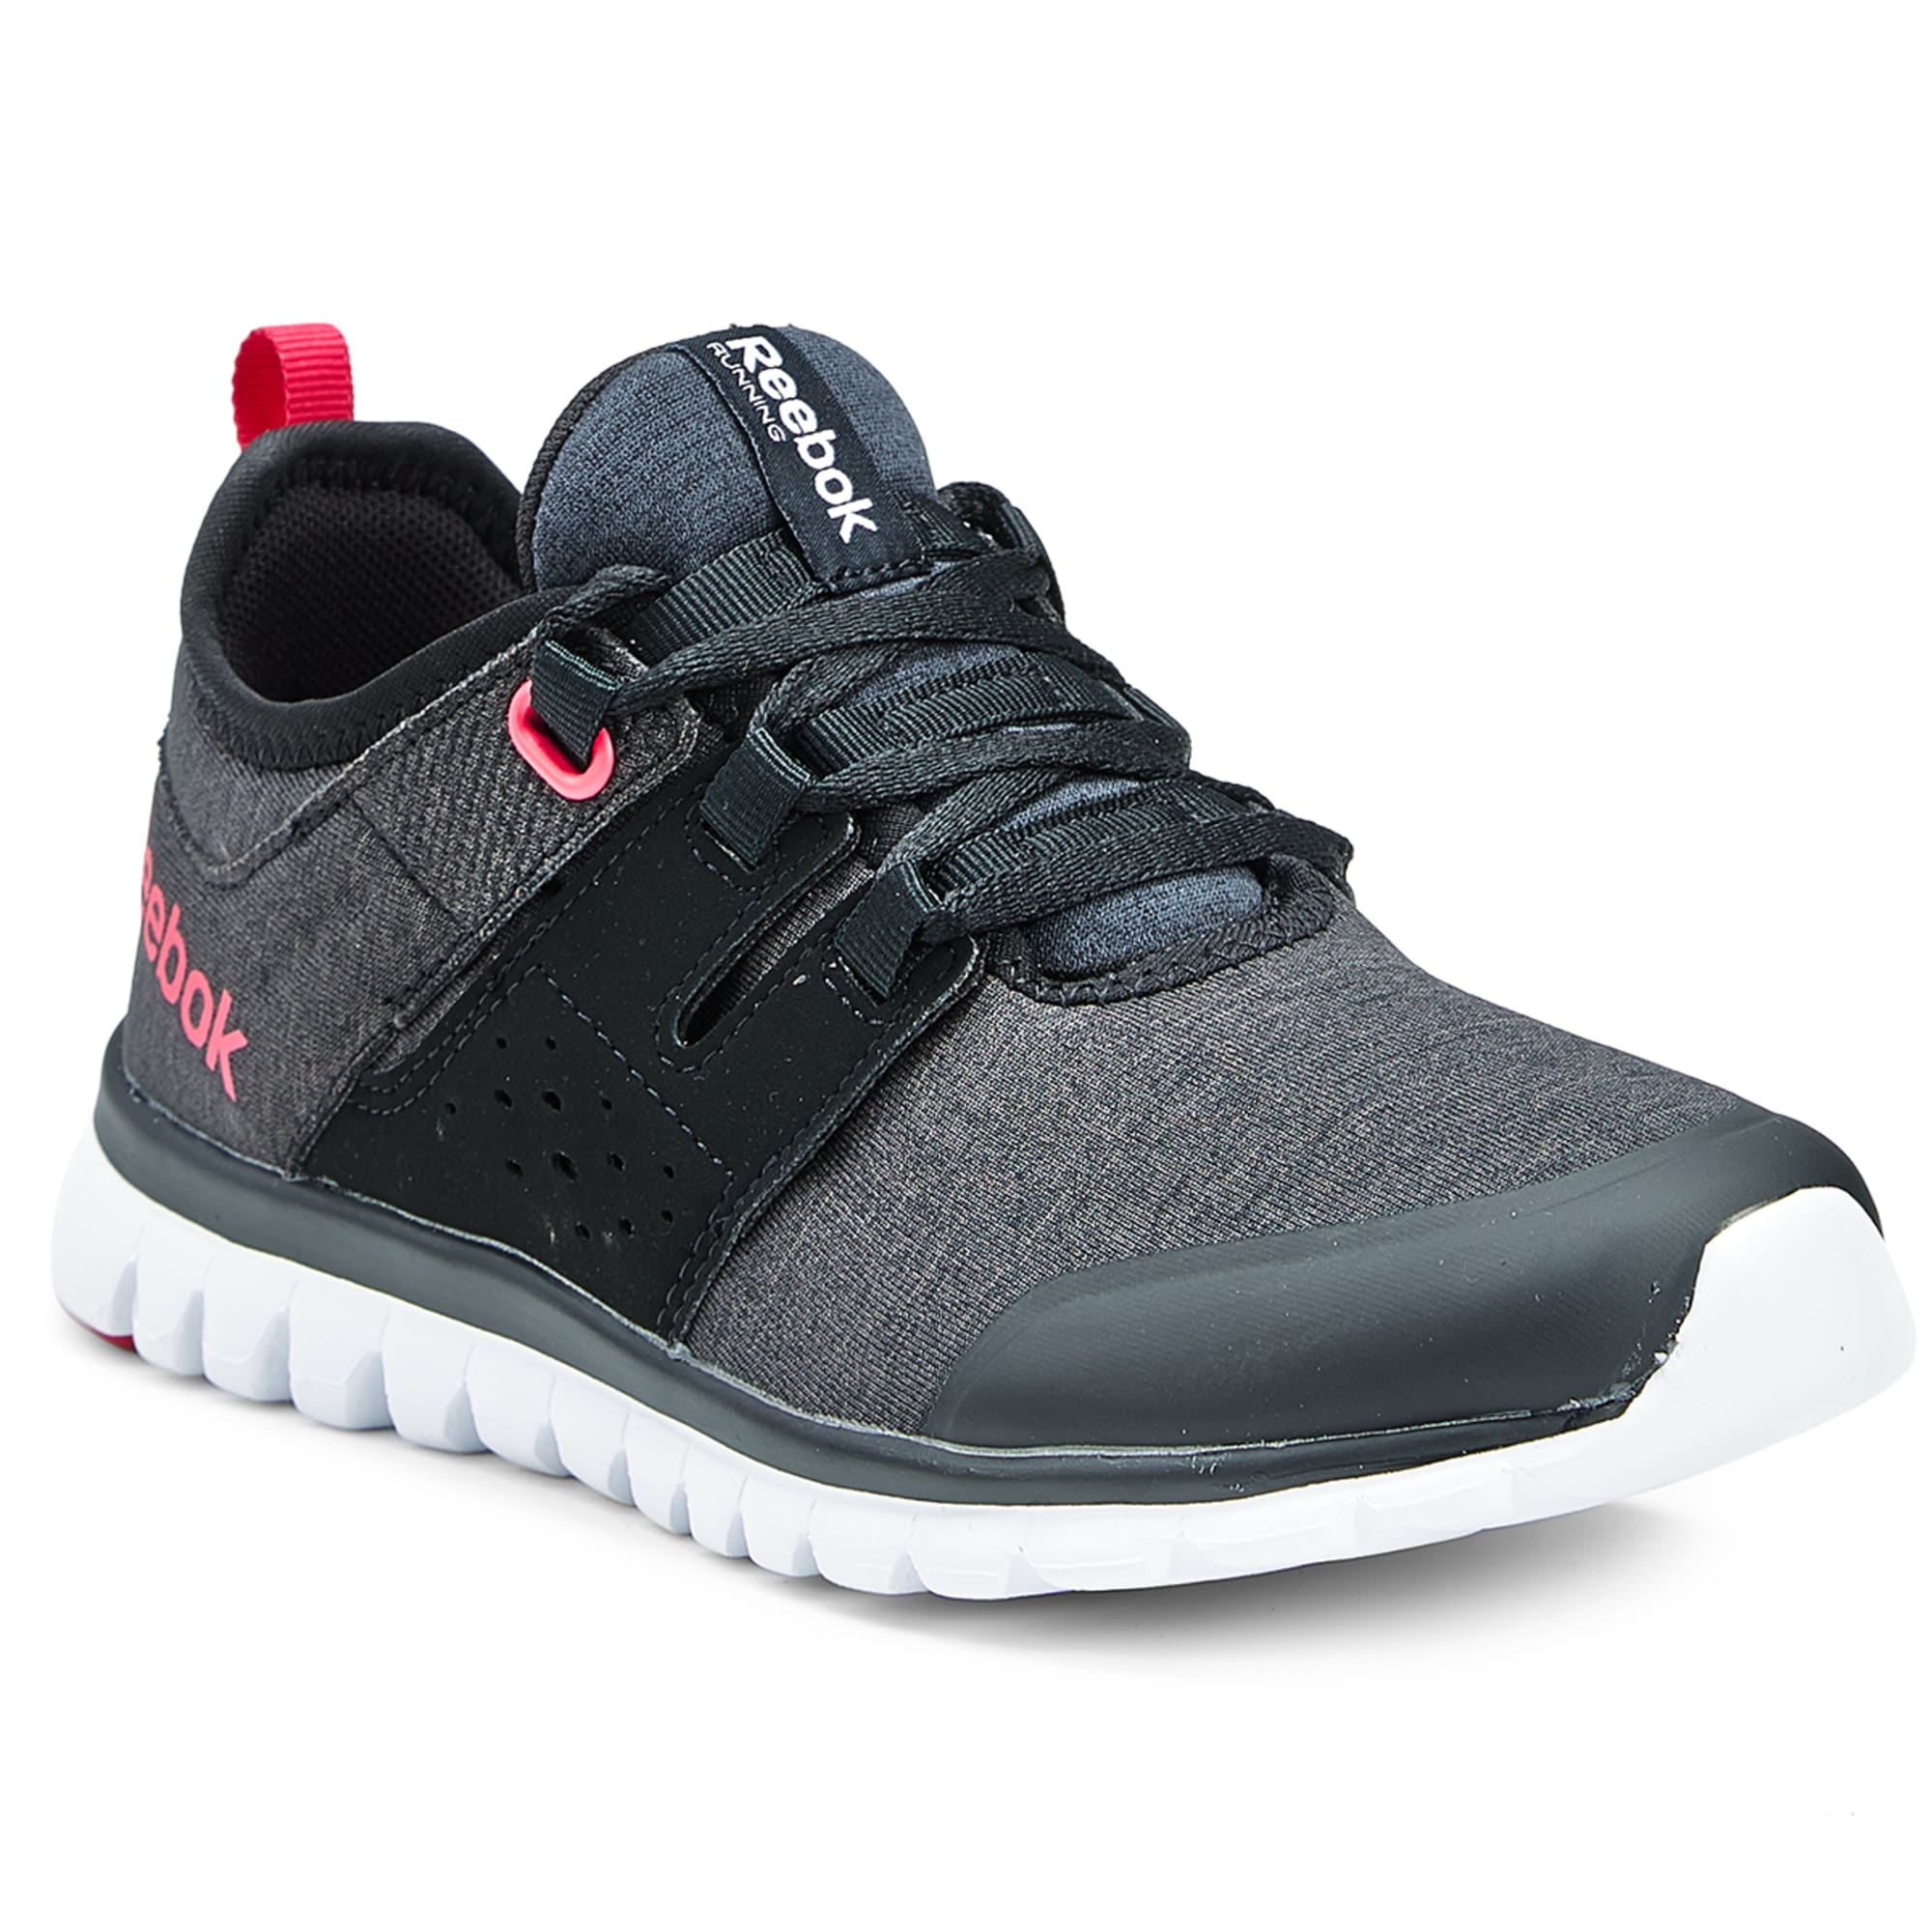 sublite authentic 2.0 running shoes